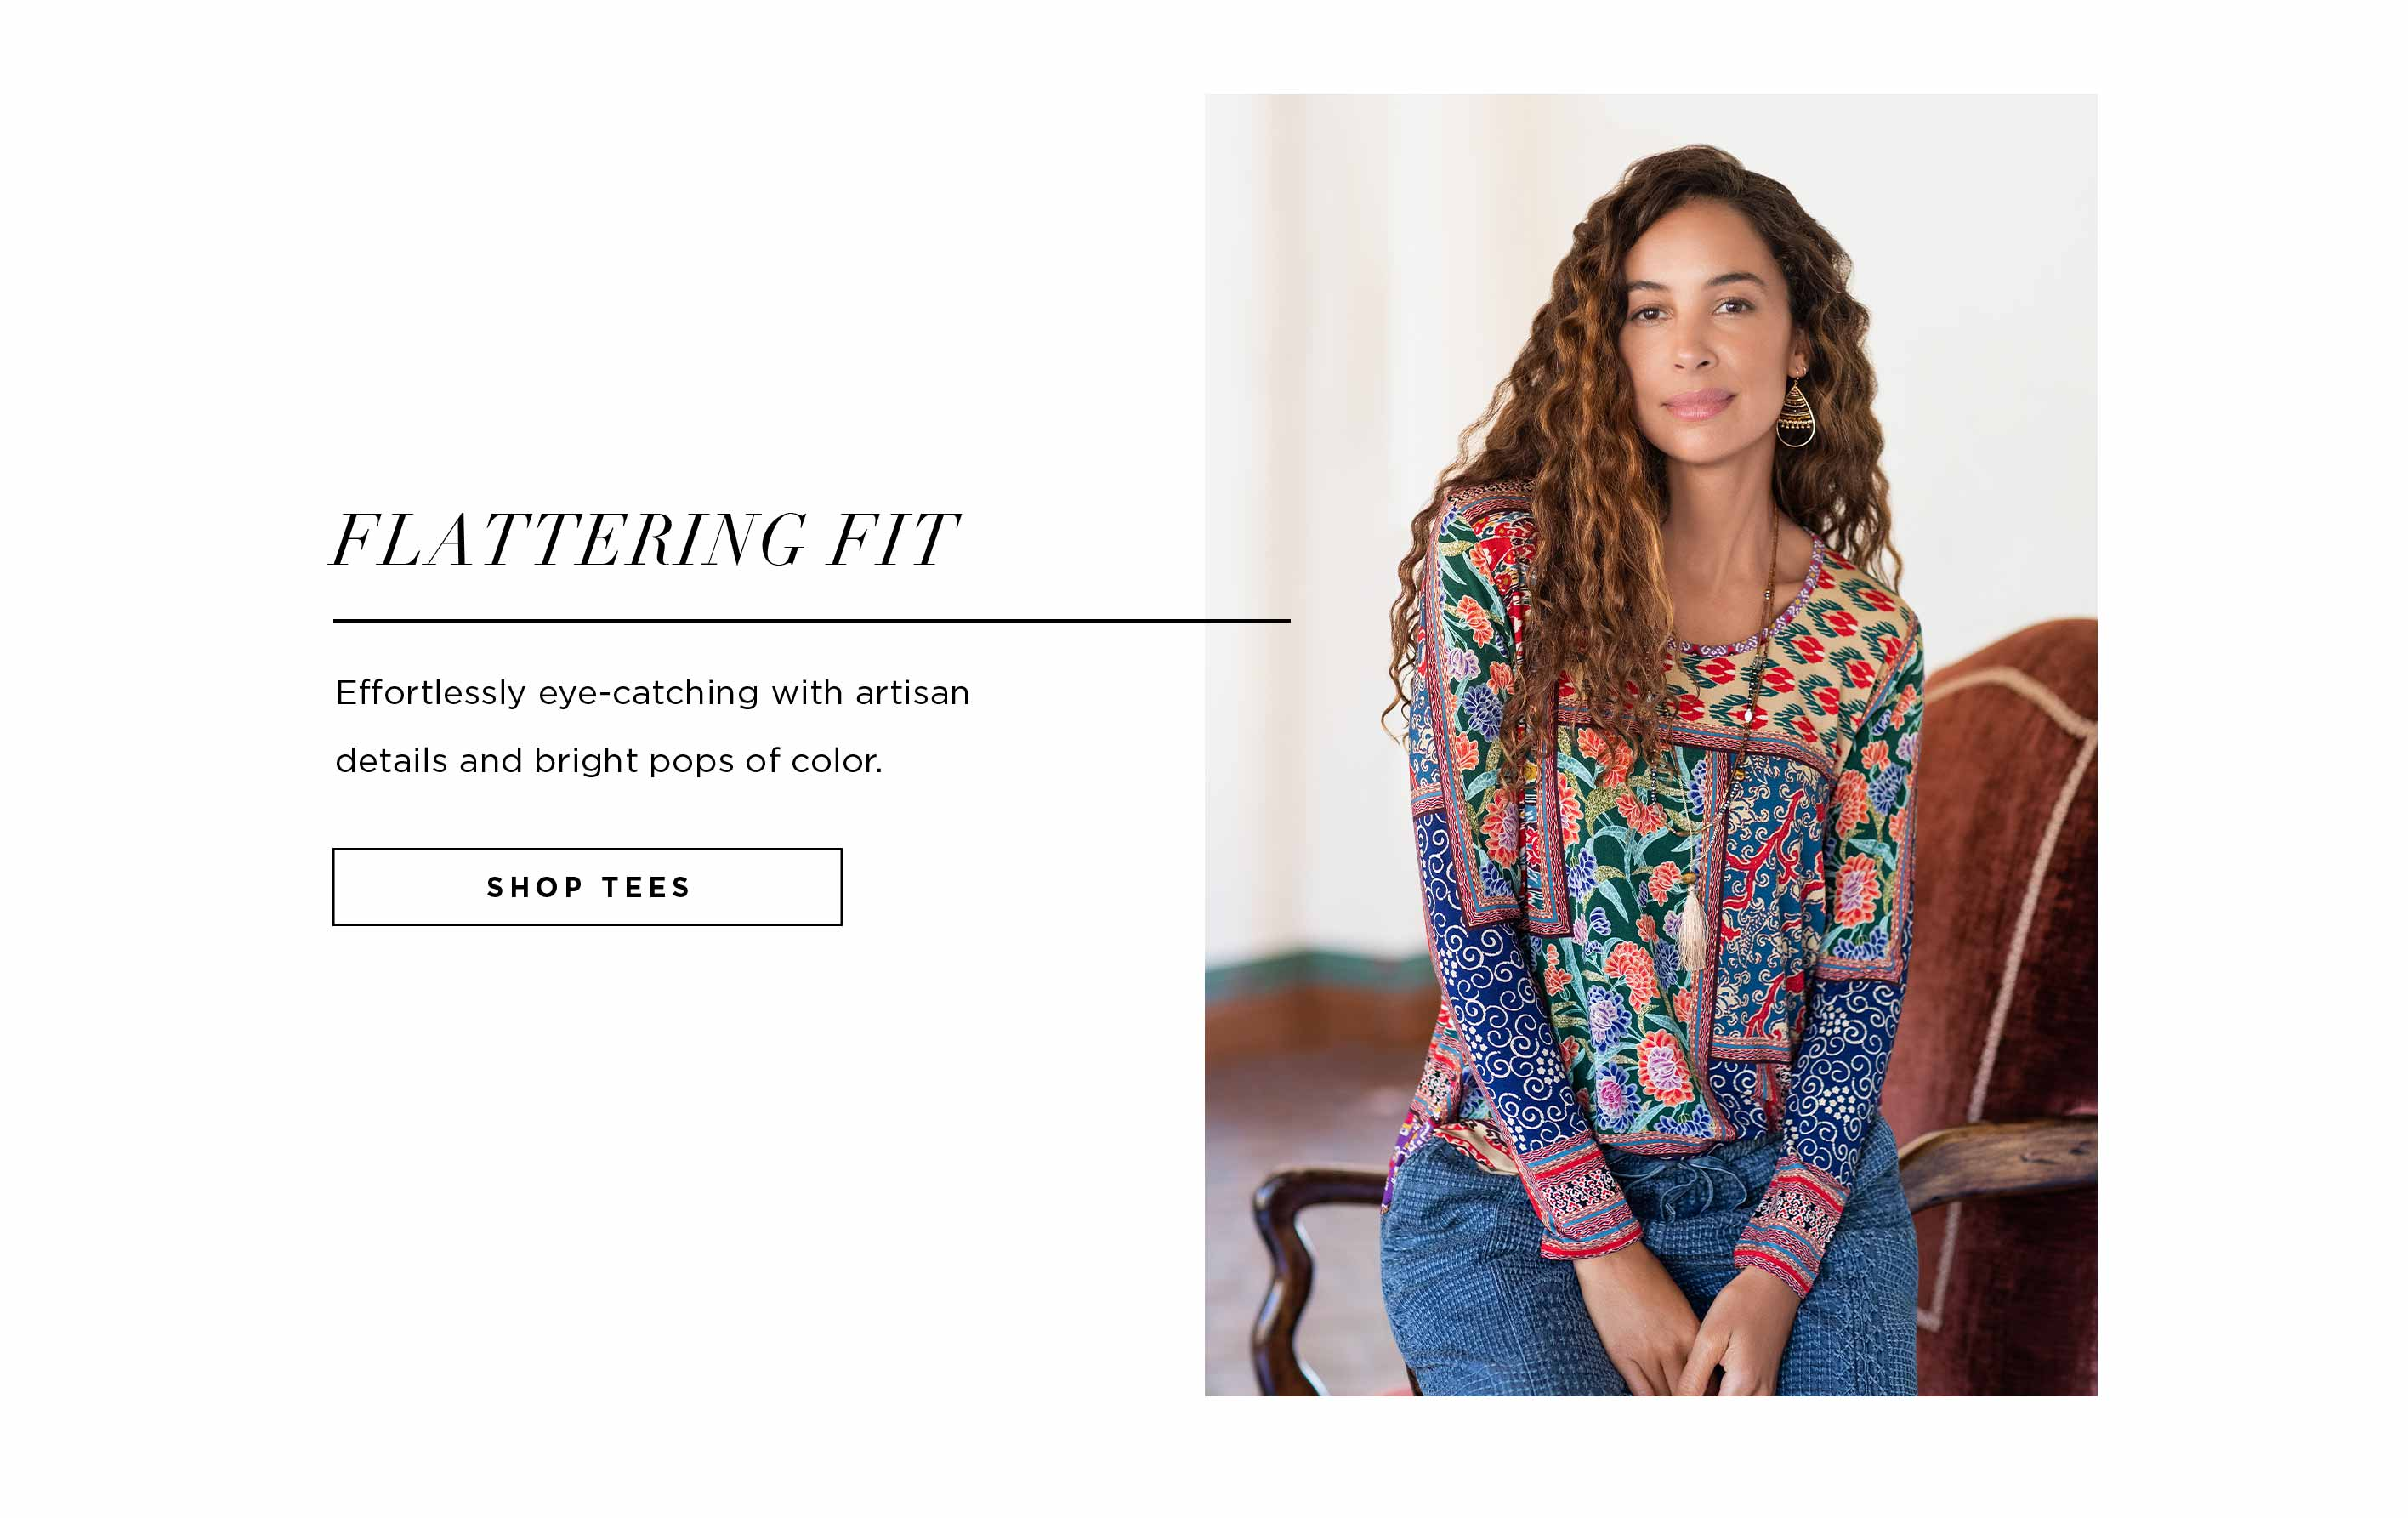 Flattering Fit - Effortlessly eye-catching with artisan details and bright pops of color - Shop Tees